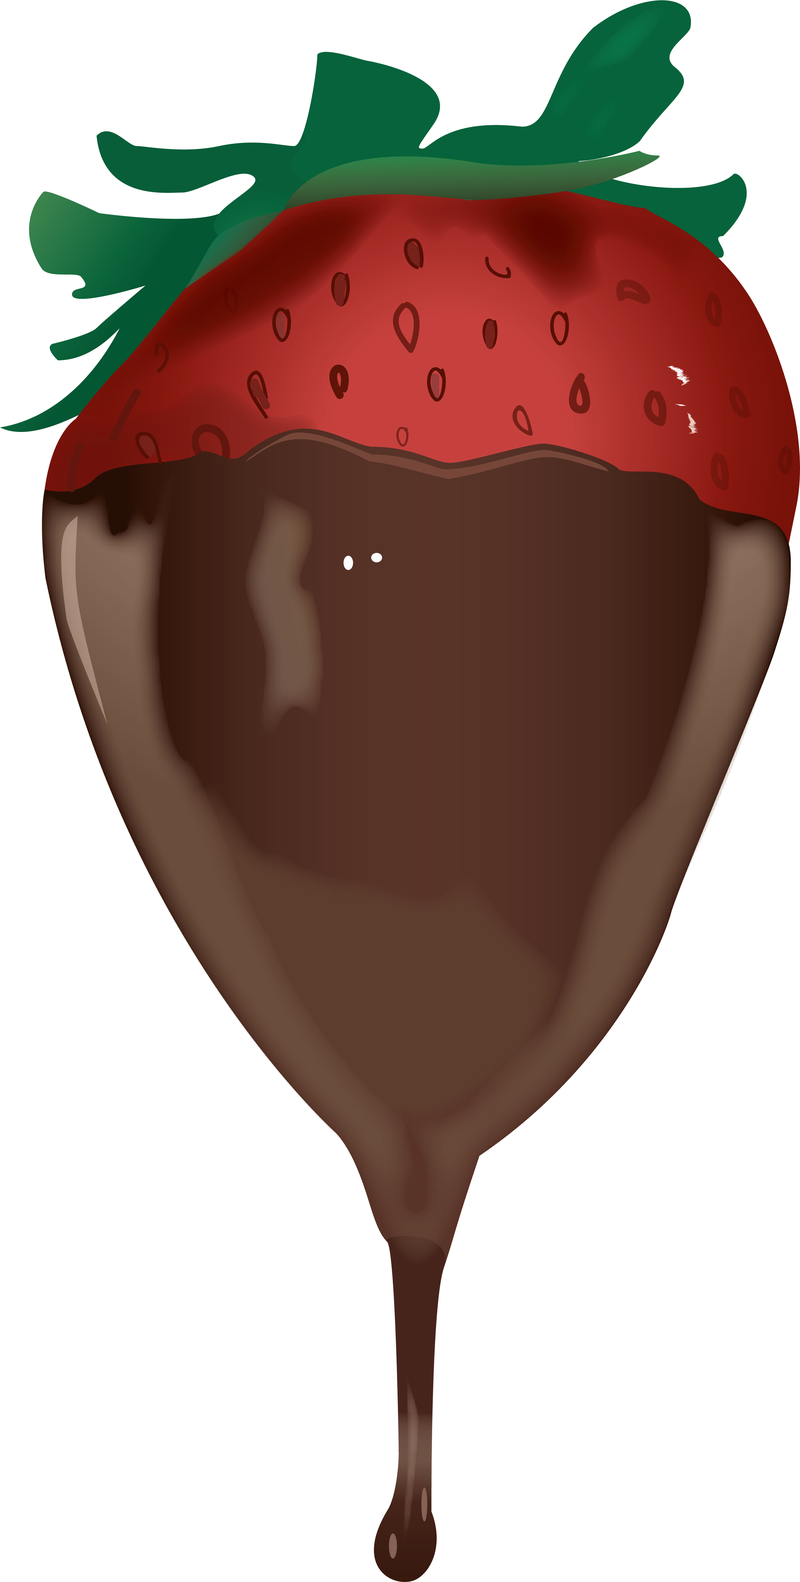 800 x 1582 png 238kBChocolate